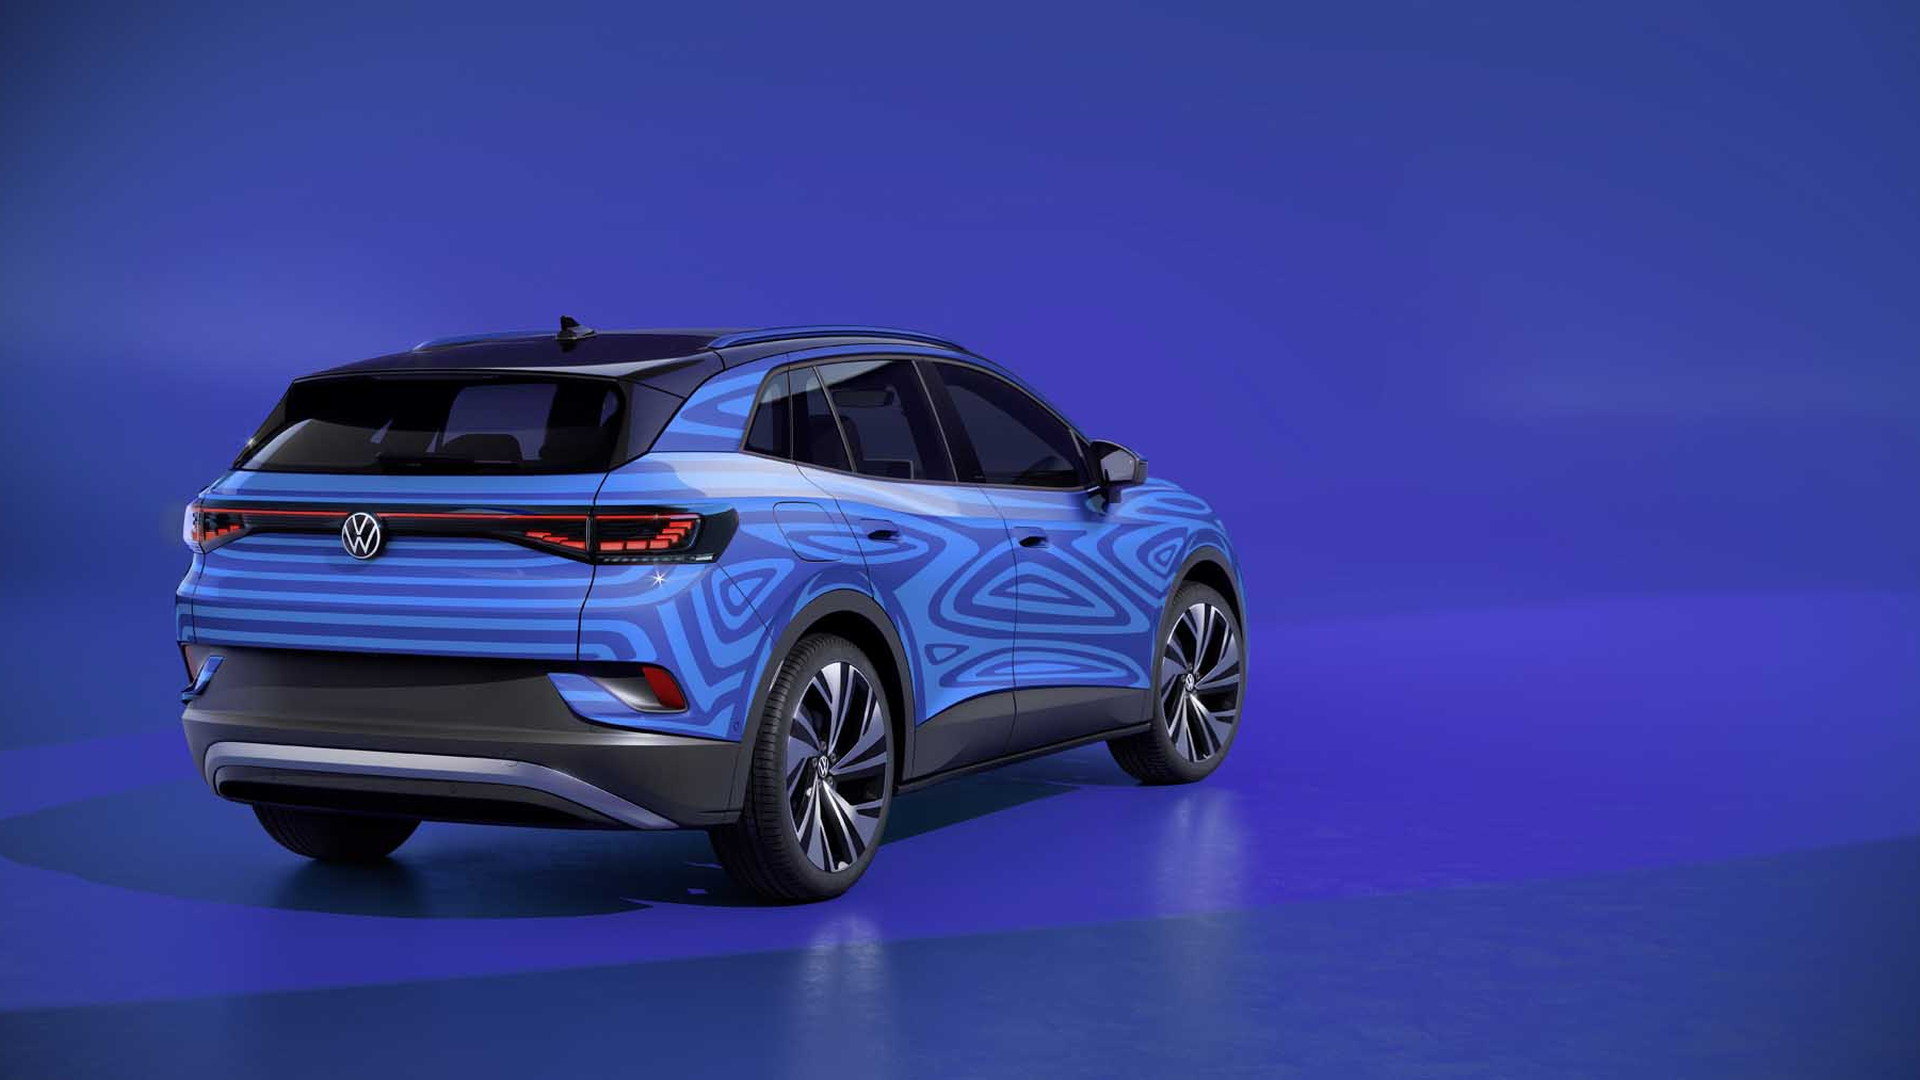 VW ID.4 crossover